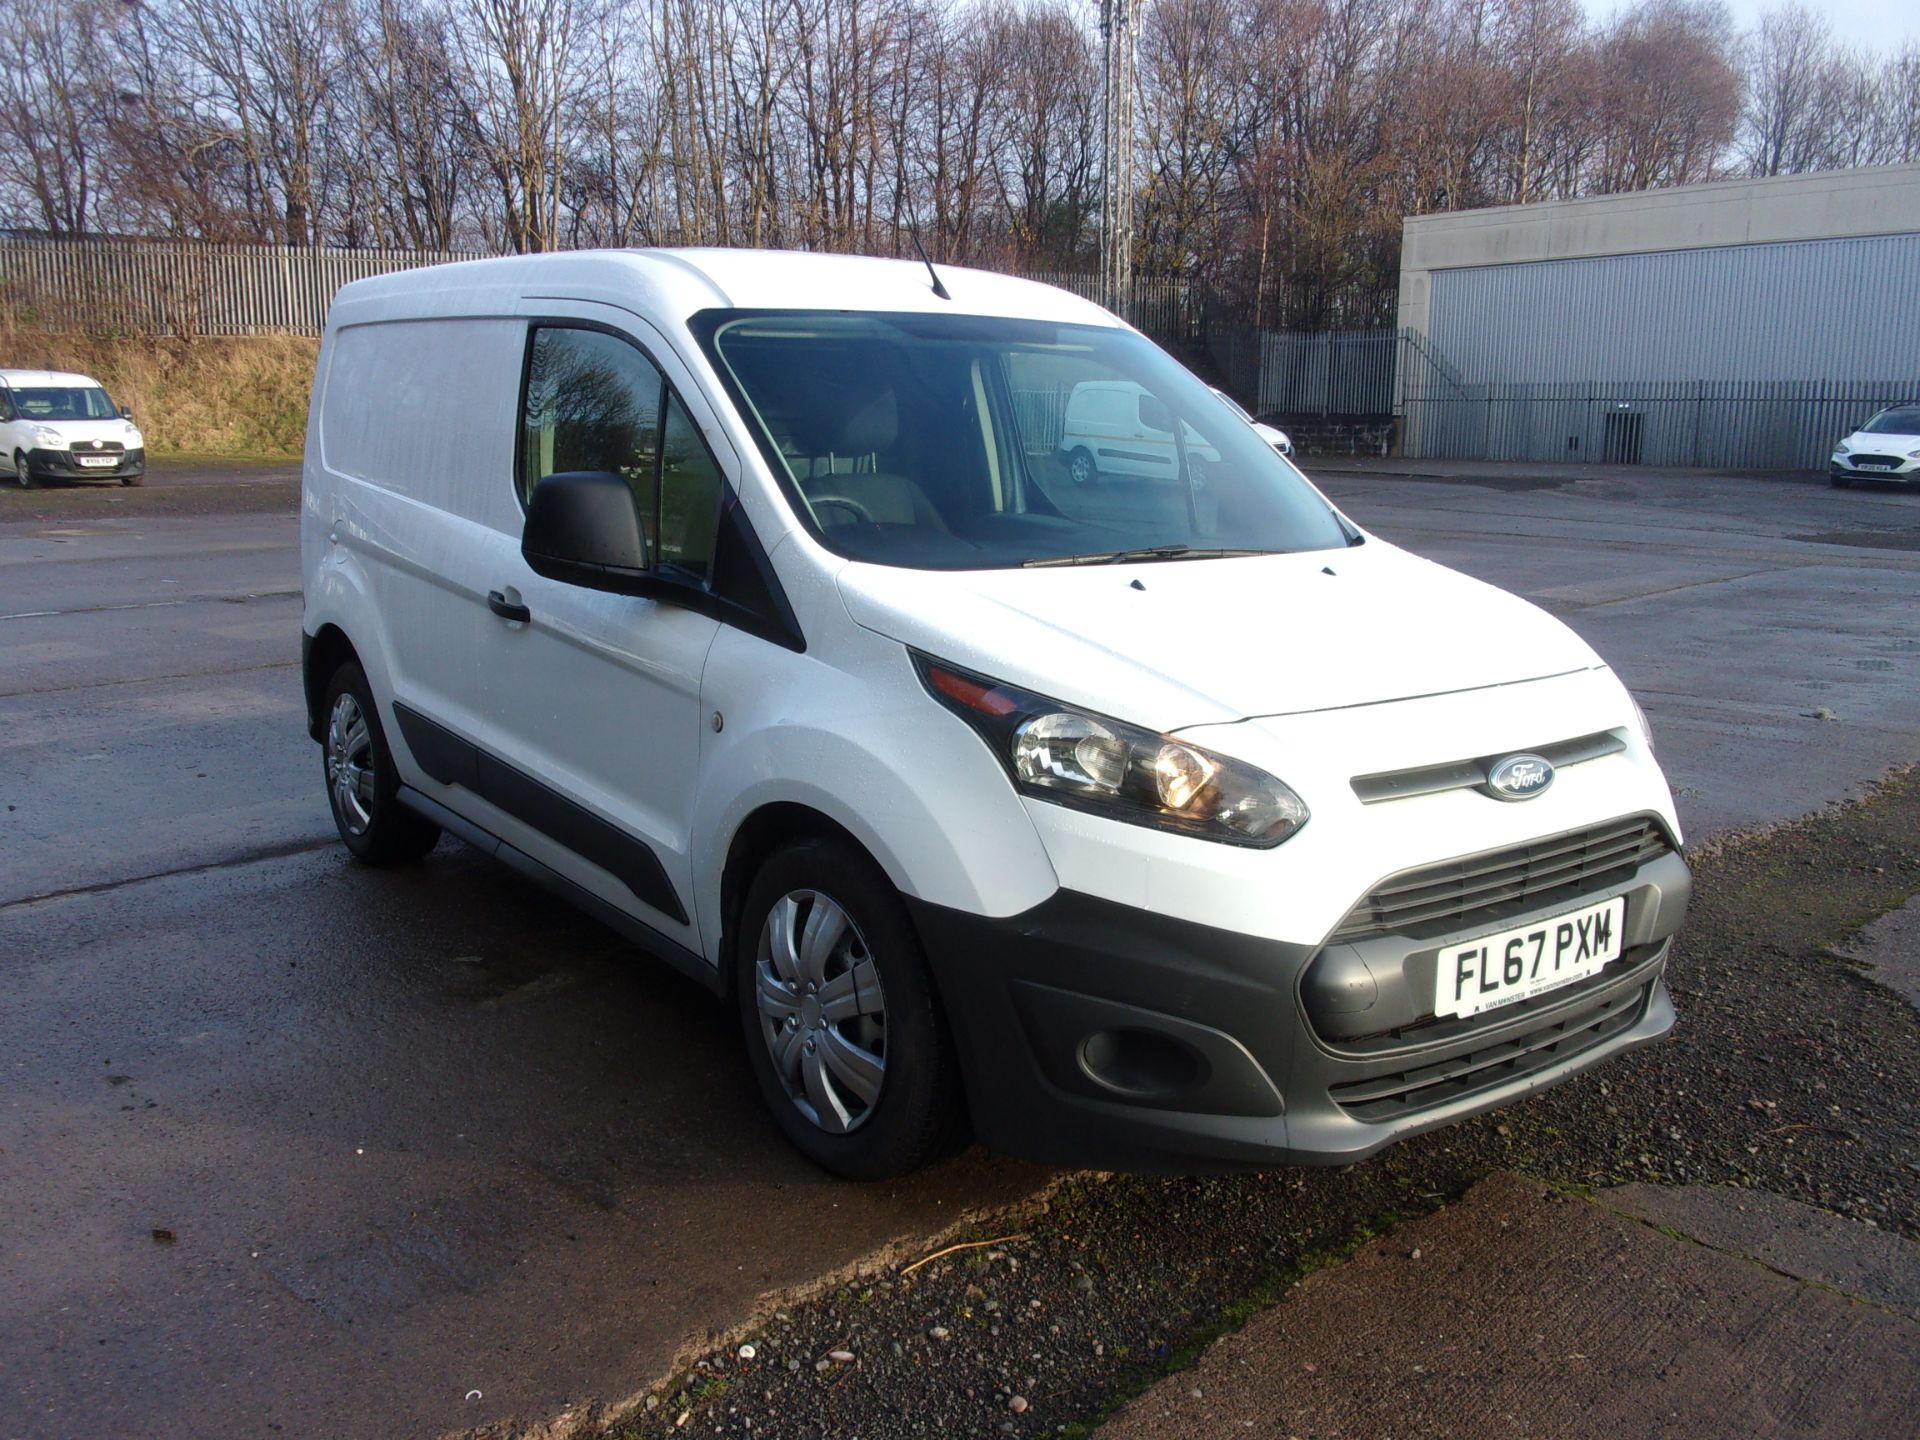 2017 Ford Transit Connect 200 L1 DIESEL 1.5 TDCI 75PS VAN  (FL67PXM) Thumbnail 1